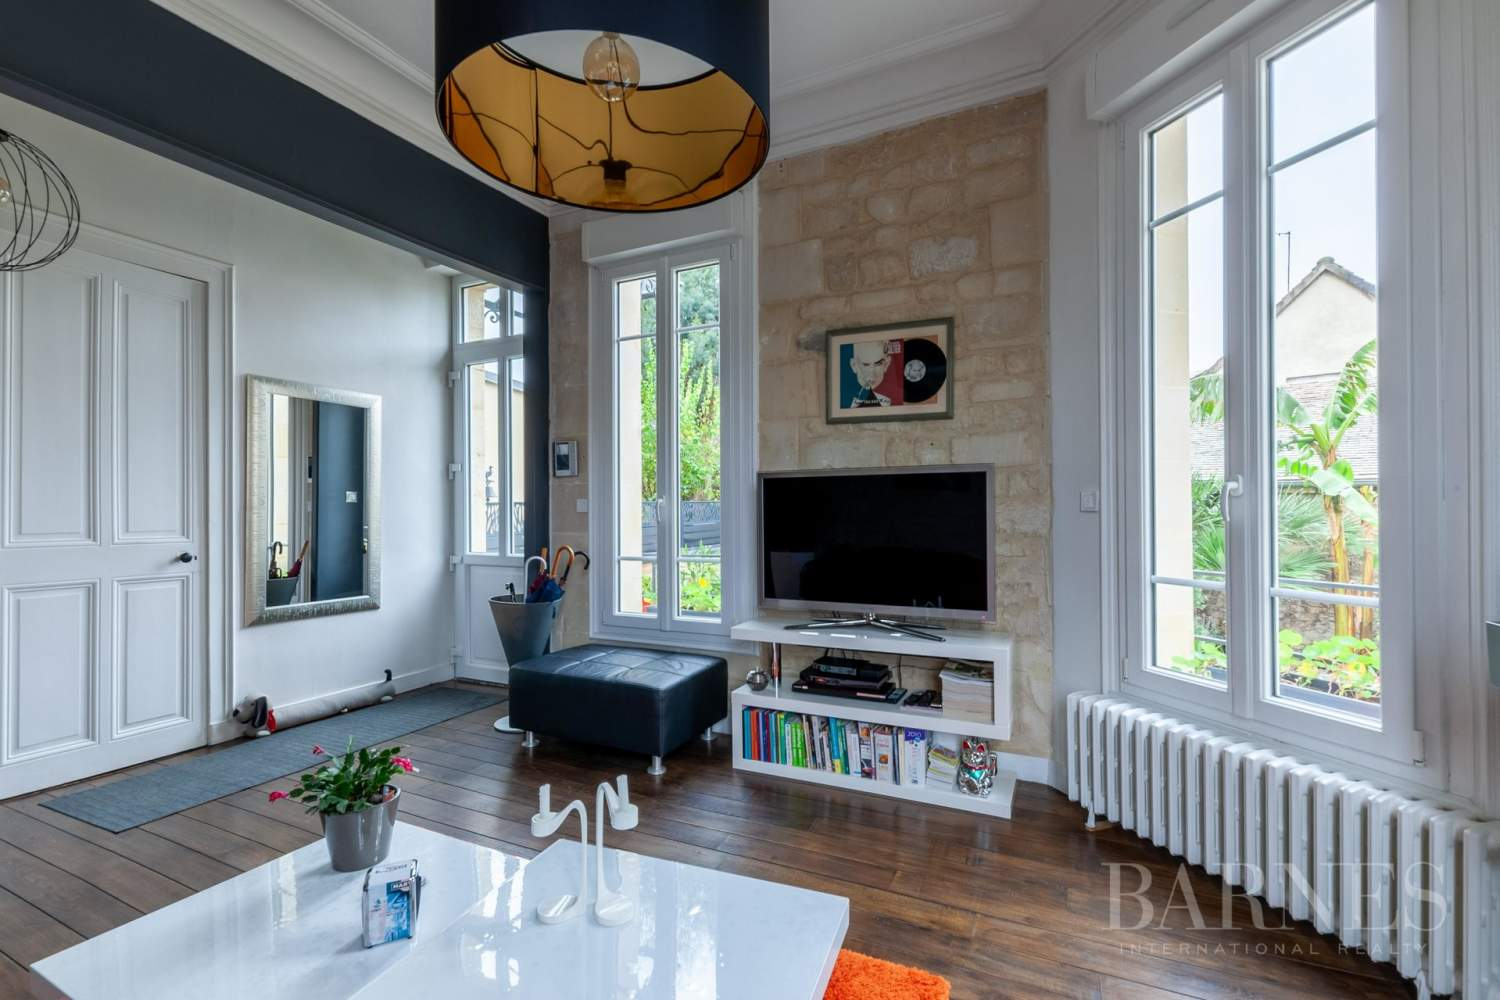 Caen Centre - Fully-renovated 196m² (2,109 sq ft) bourgeois house, 4 bedrooms, with garden and garage picture 3